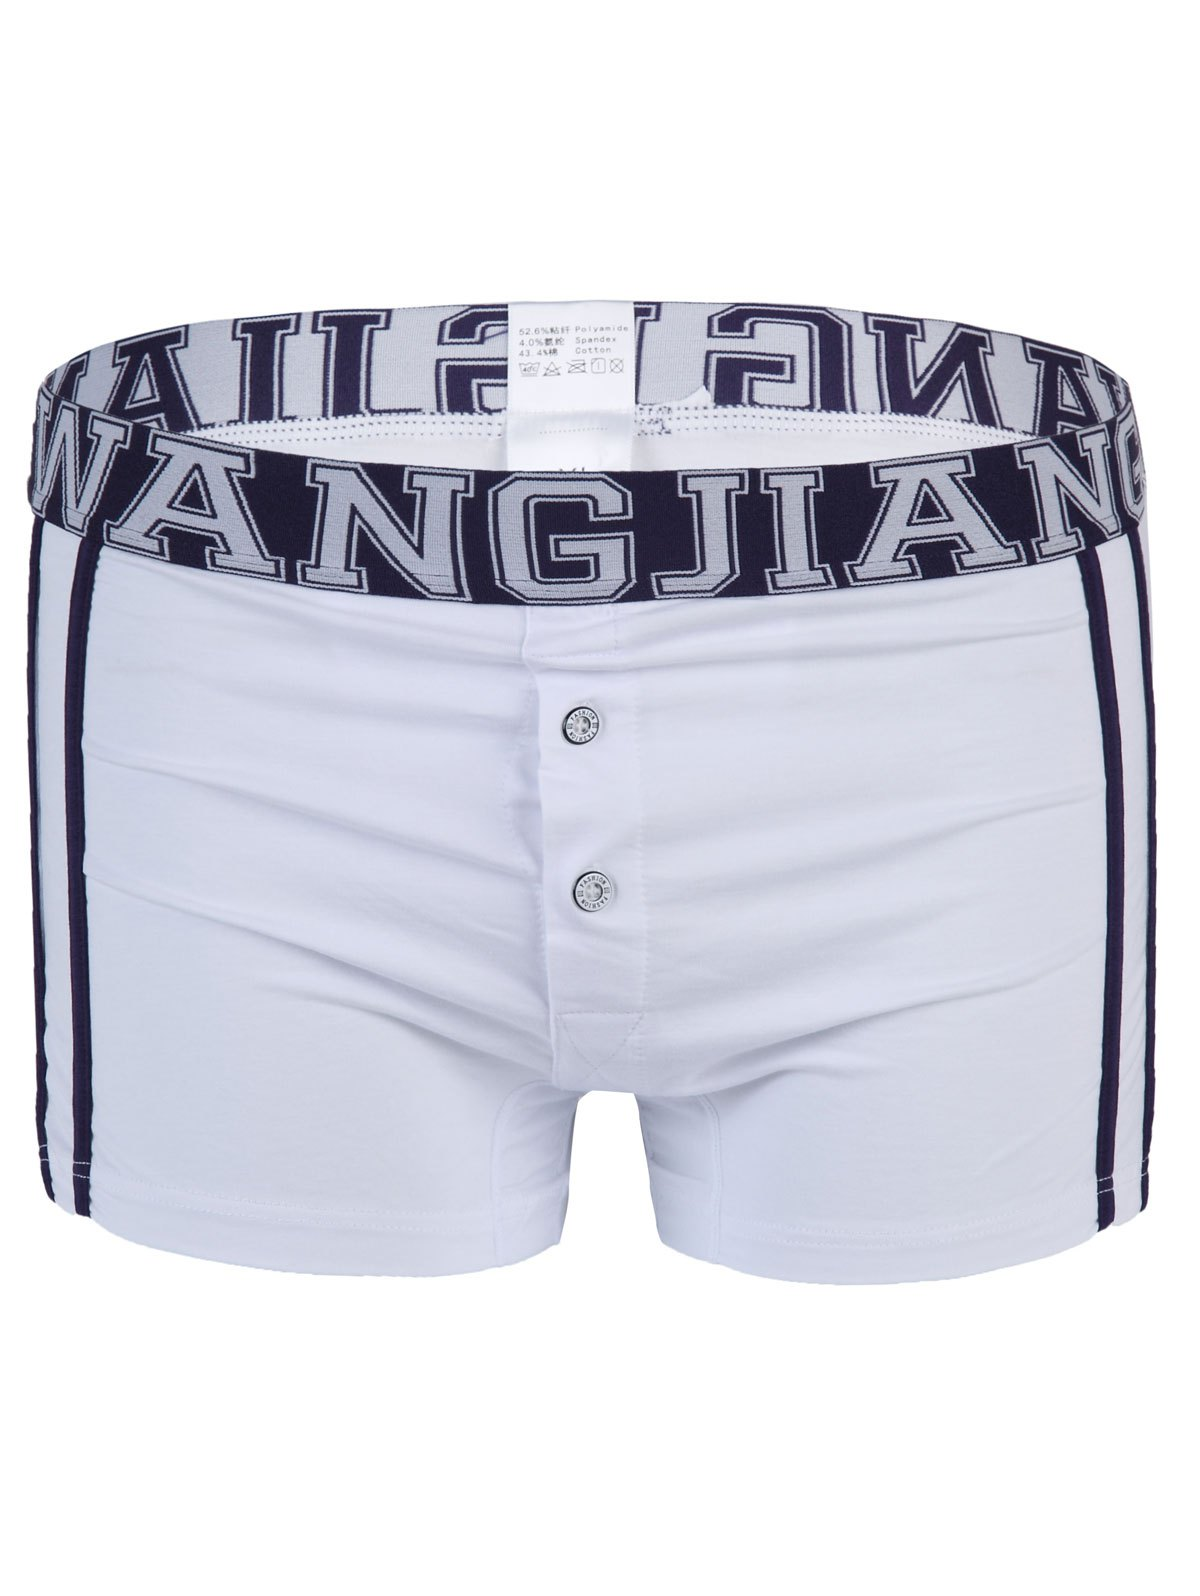 Casual Men's U Pouch Inside Button Design Boxers - WHITE XL